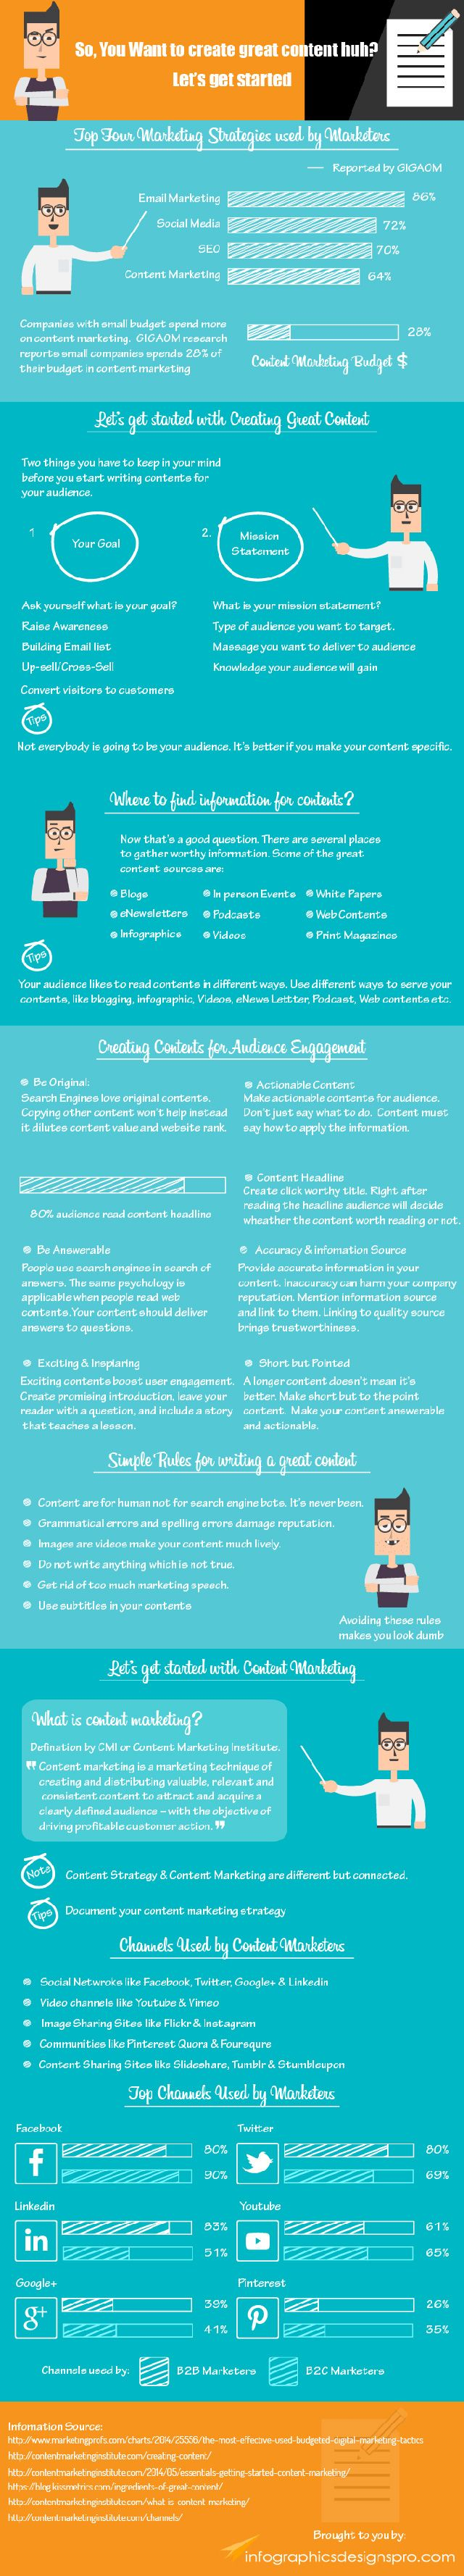 Tips for Creating Effective Web Content